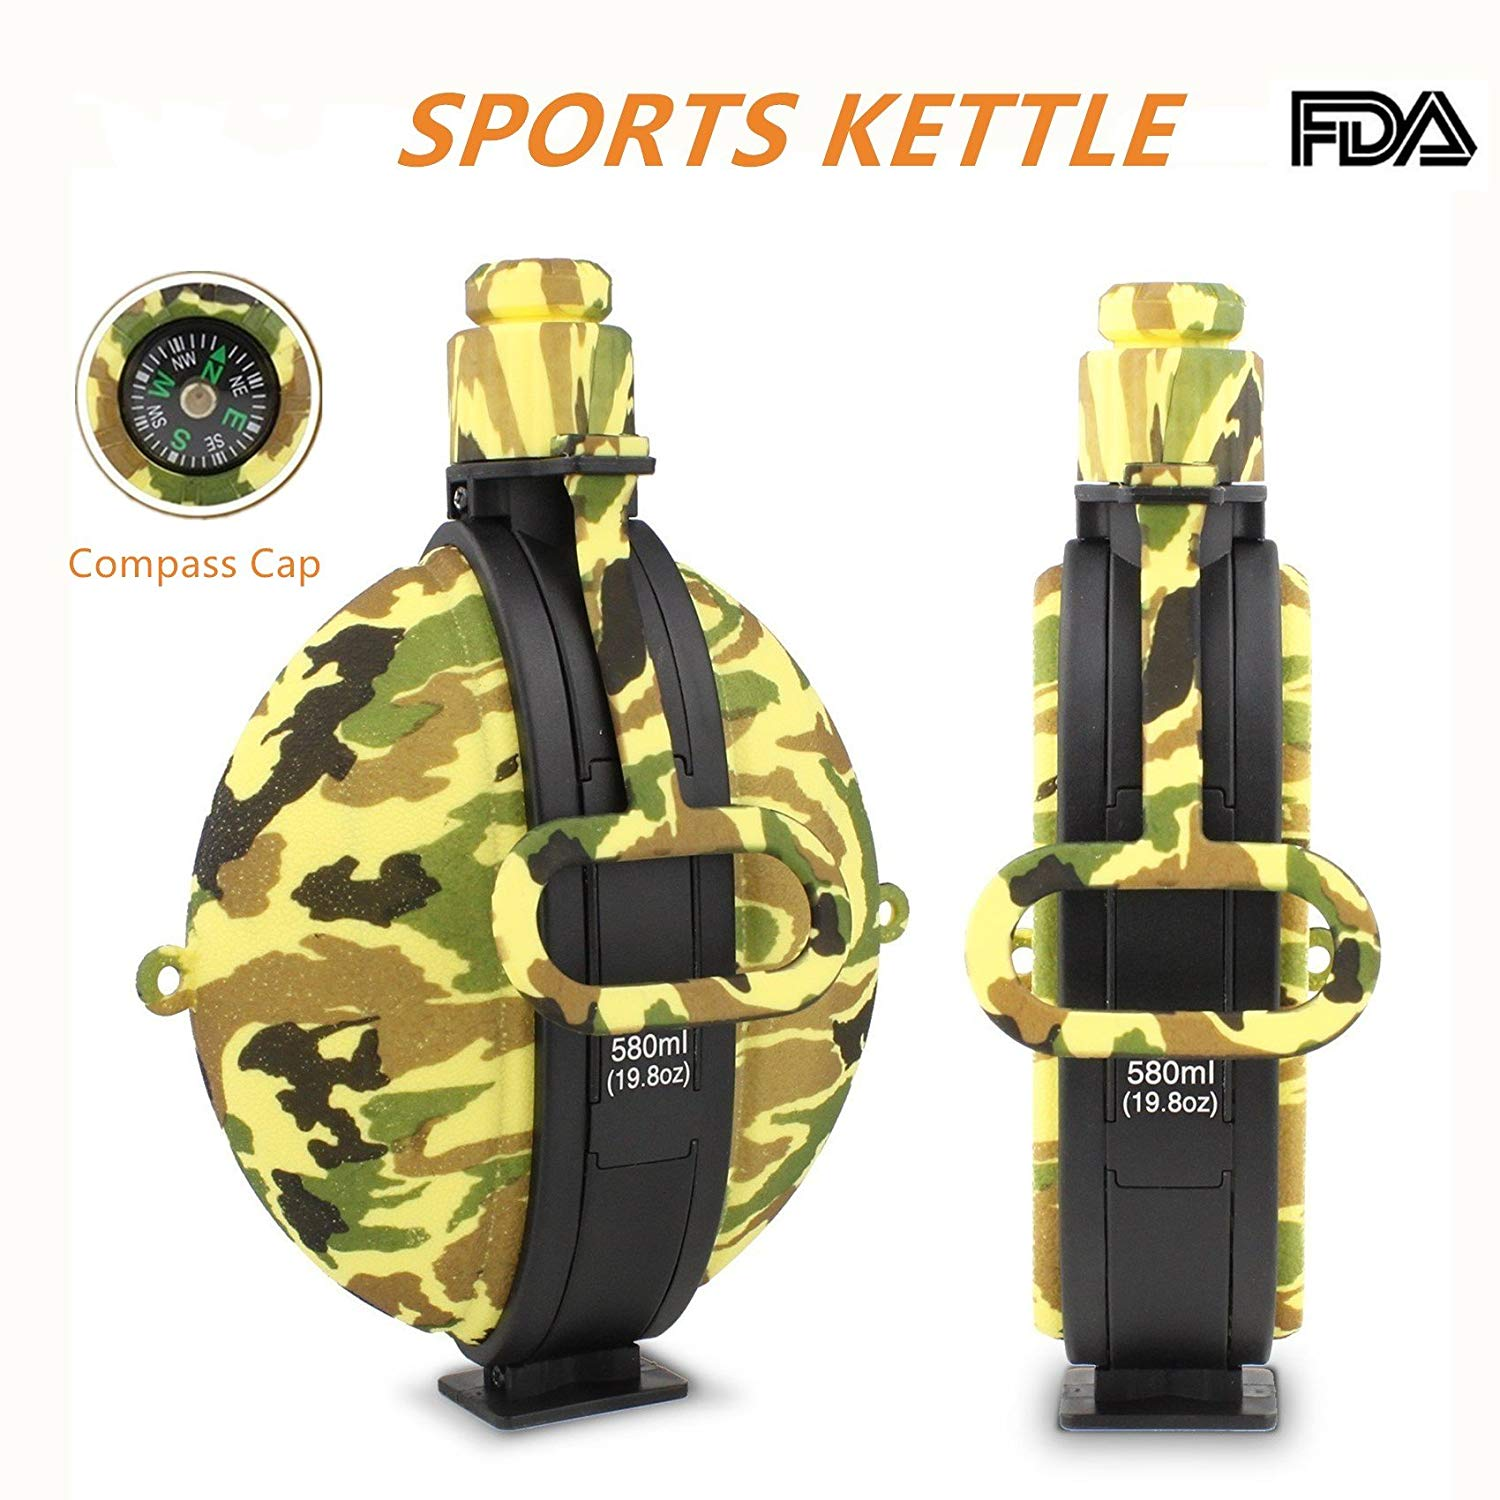 Collapsible Water Bottle Portable Silicone Water Kettle with Compass Bottle Cap